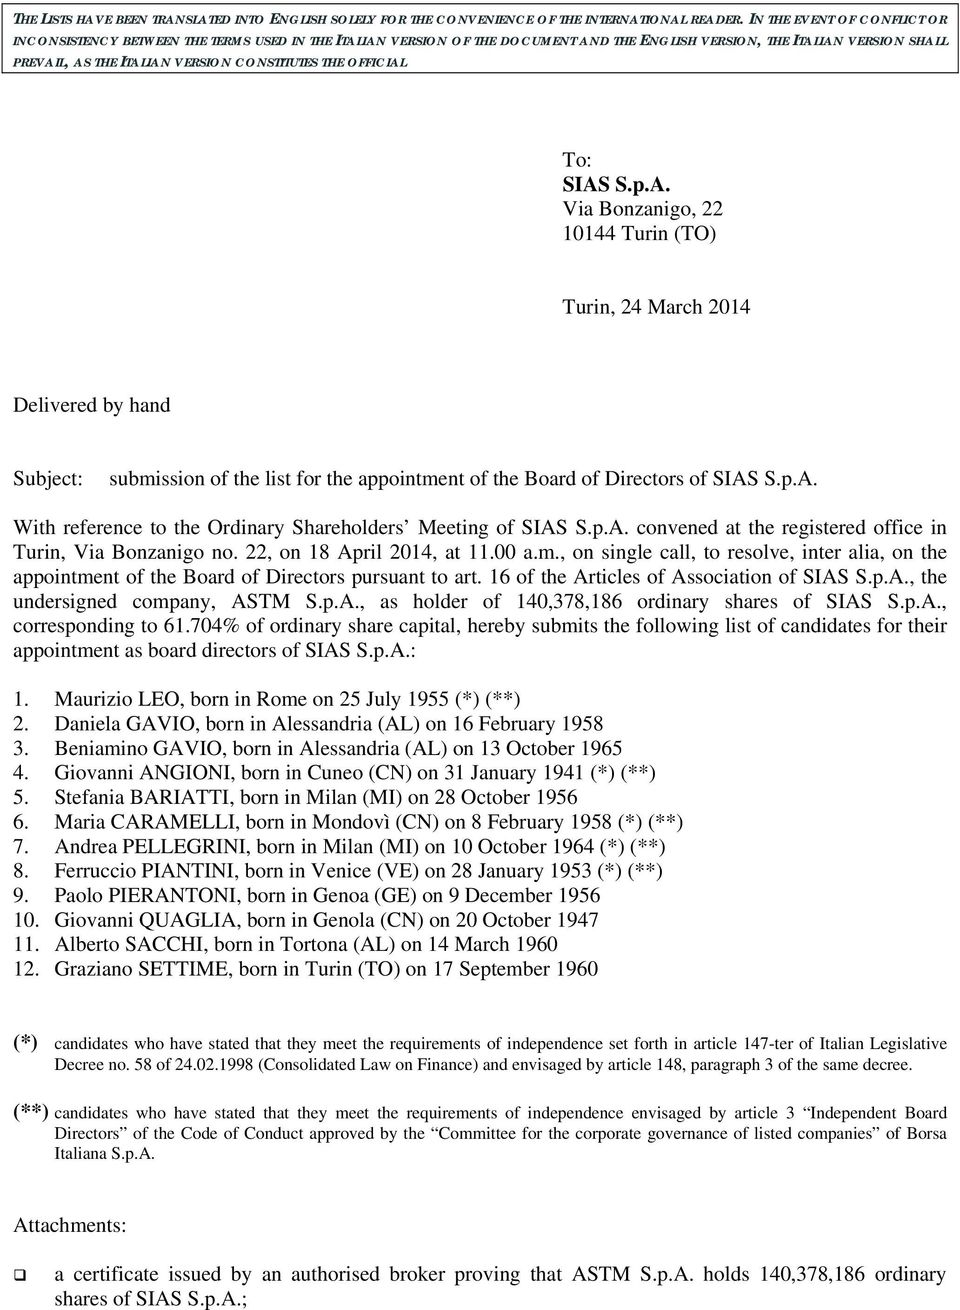 THE OFFICIAL To: SIAS S.p.A. Via Bonzanigo, 22 10144 Turin (TO) Turin, 24 March 2014 Delivered by hand Subject: submission of the list for the appointment of the Board of Directors of SIAS S.p.A. With reference to the Ordinary Shareholders Meeting of SIAS S.